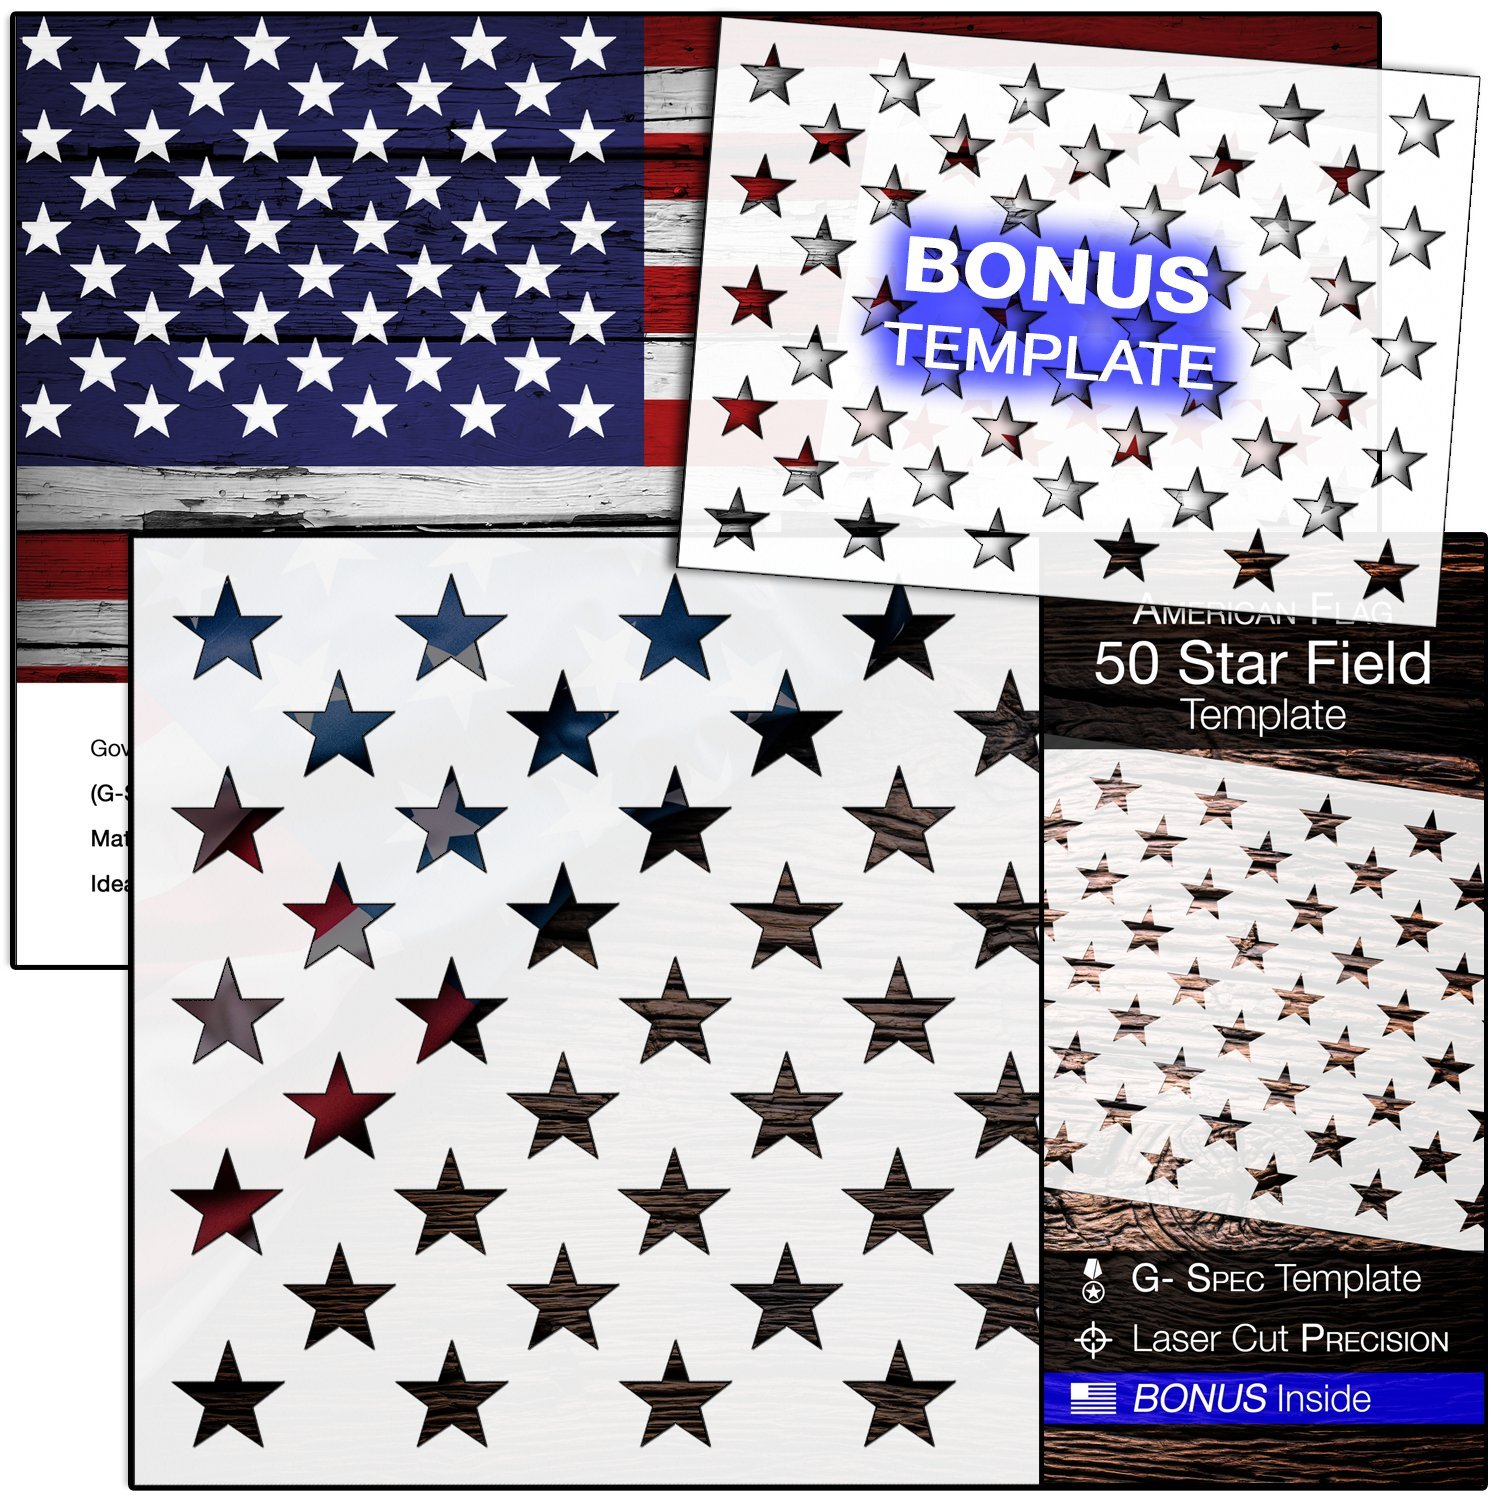 "American Flag 50 STAR STENCIL for Painting on Wood, Fabric, Walls, Airbrush + More | Reusable G-SPEC 10.5 x 14.82 inch mylar Template + FREE 7 x 9.88"" Starfield Stencil"